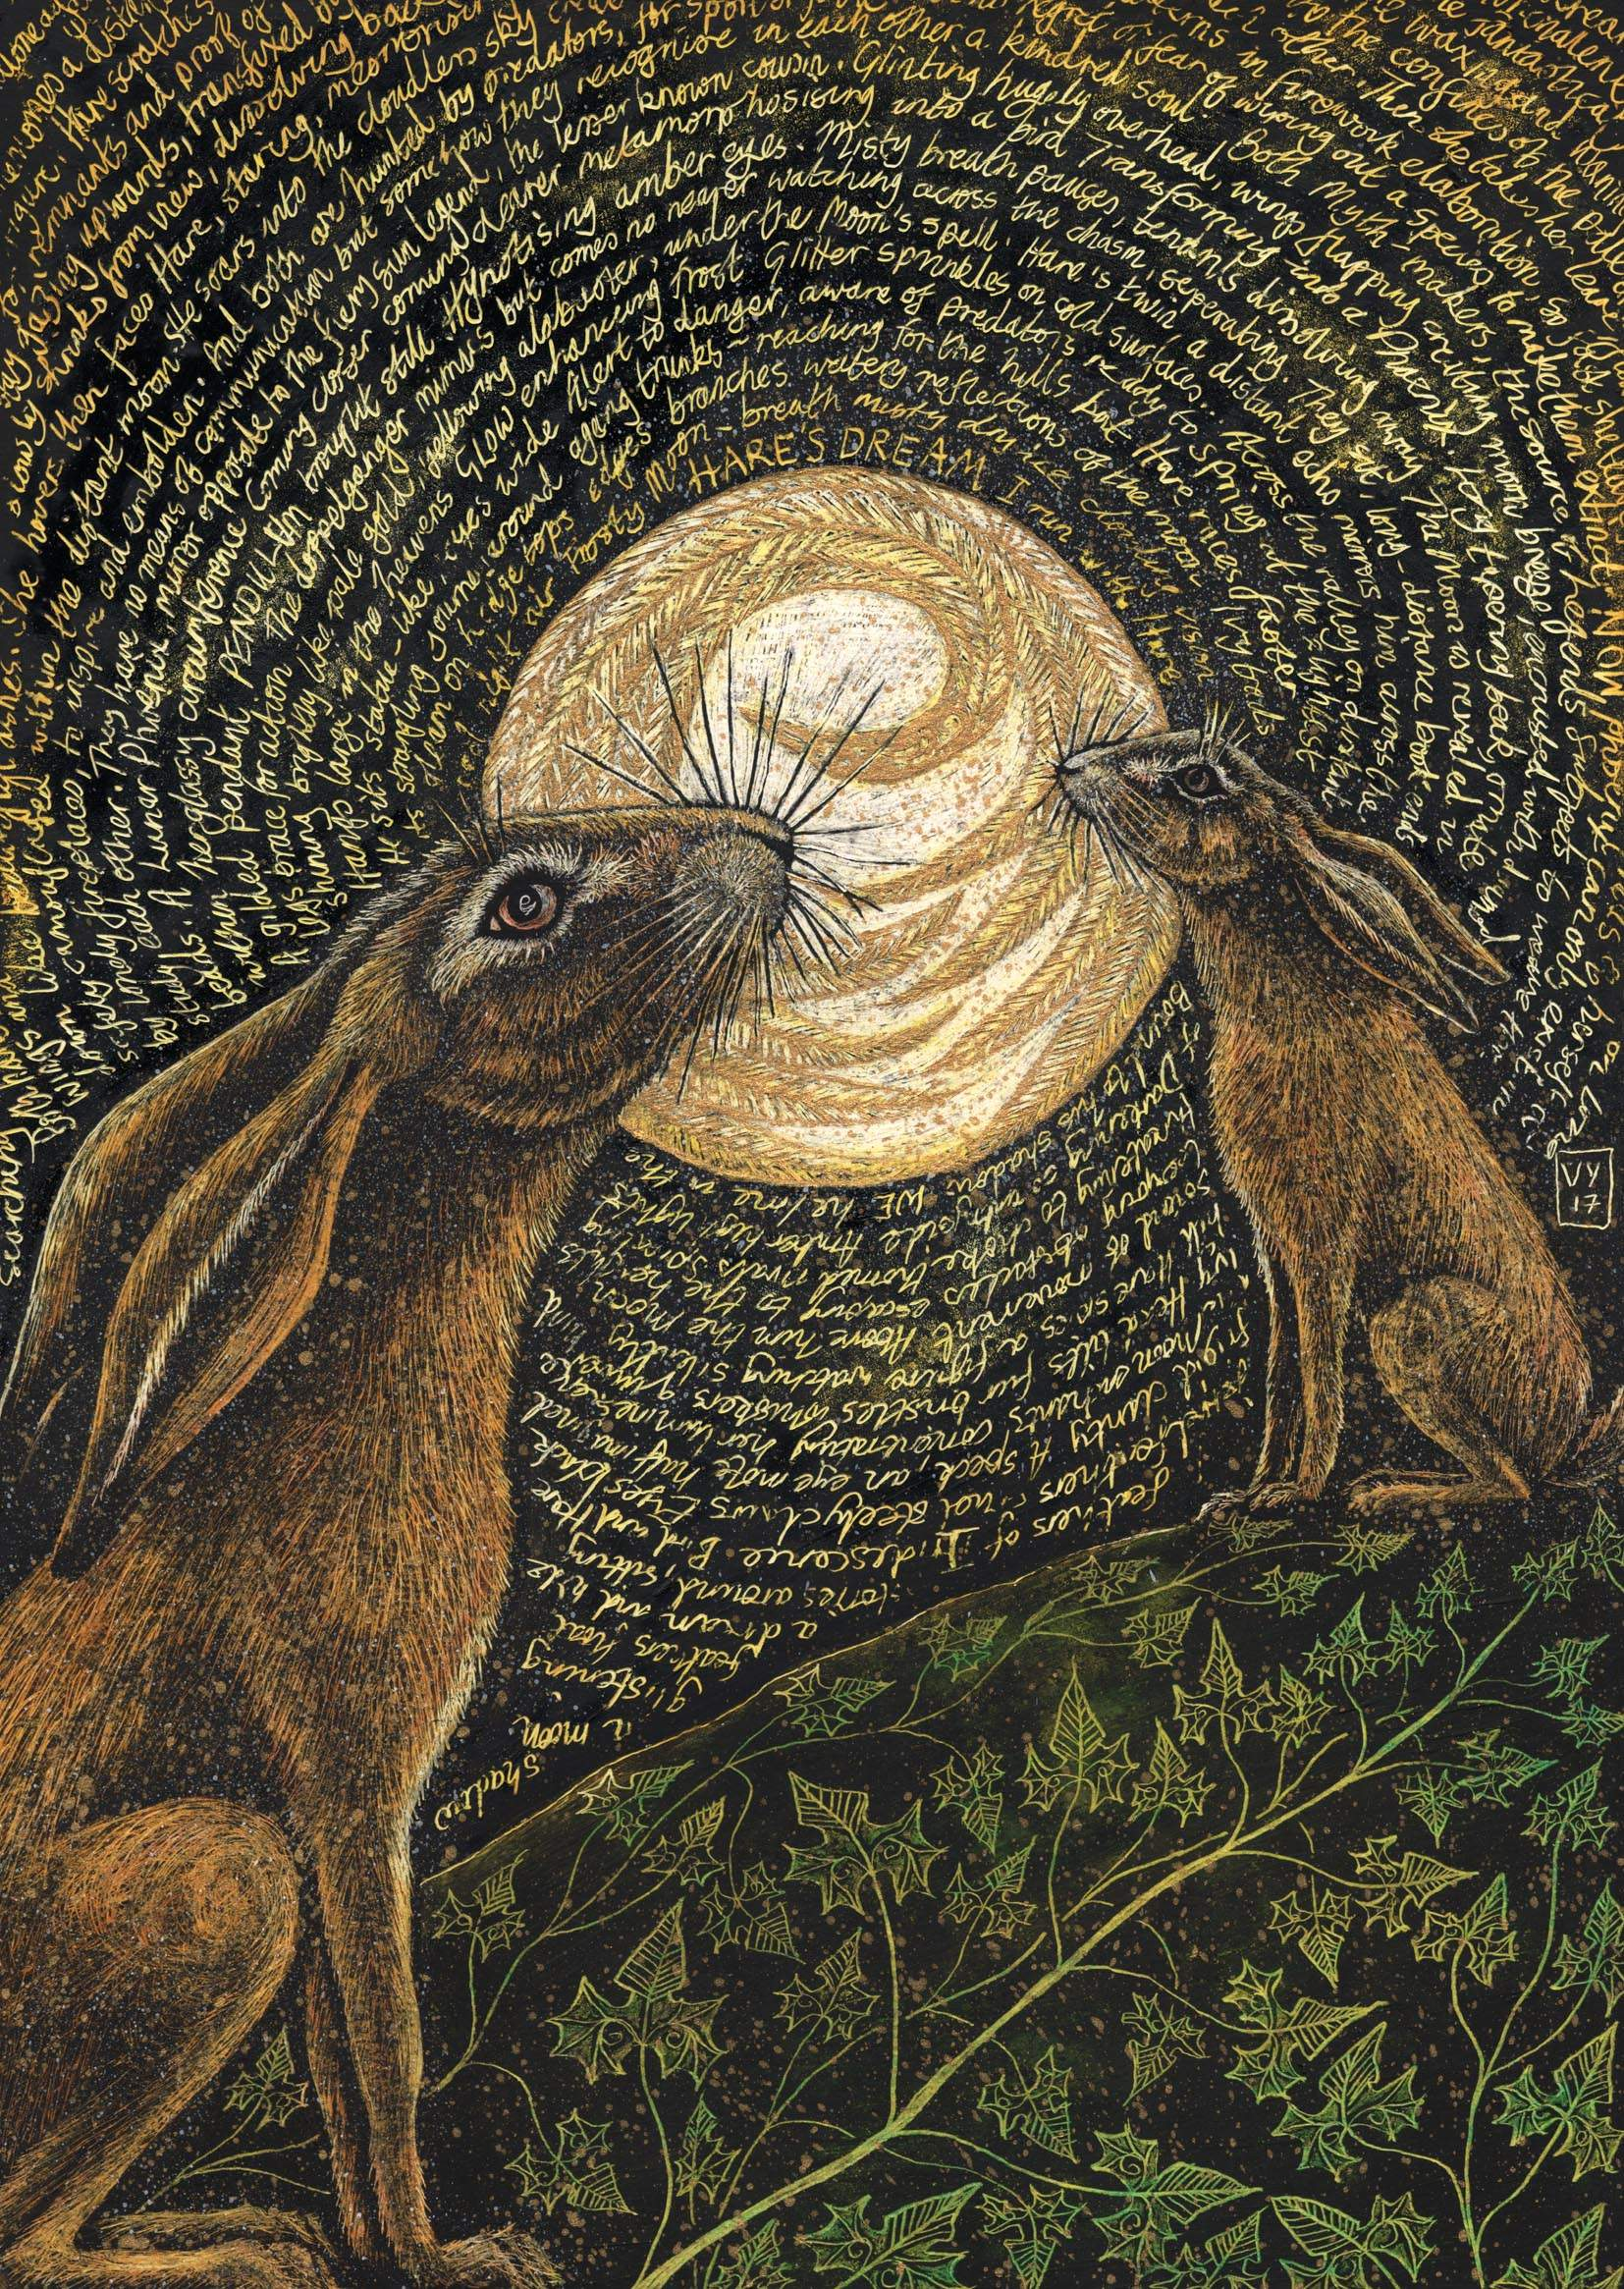 The poetry within the painting - Hare's Dream